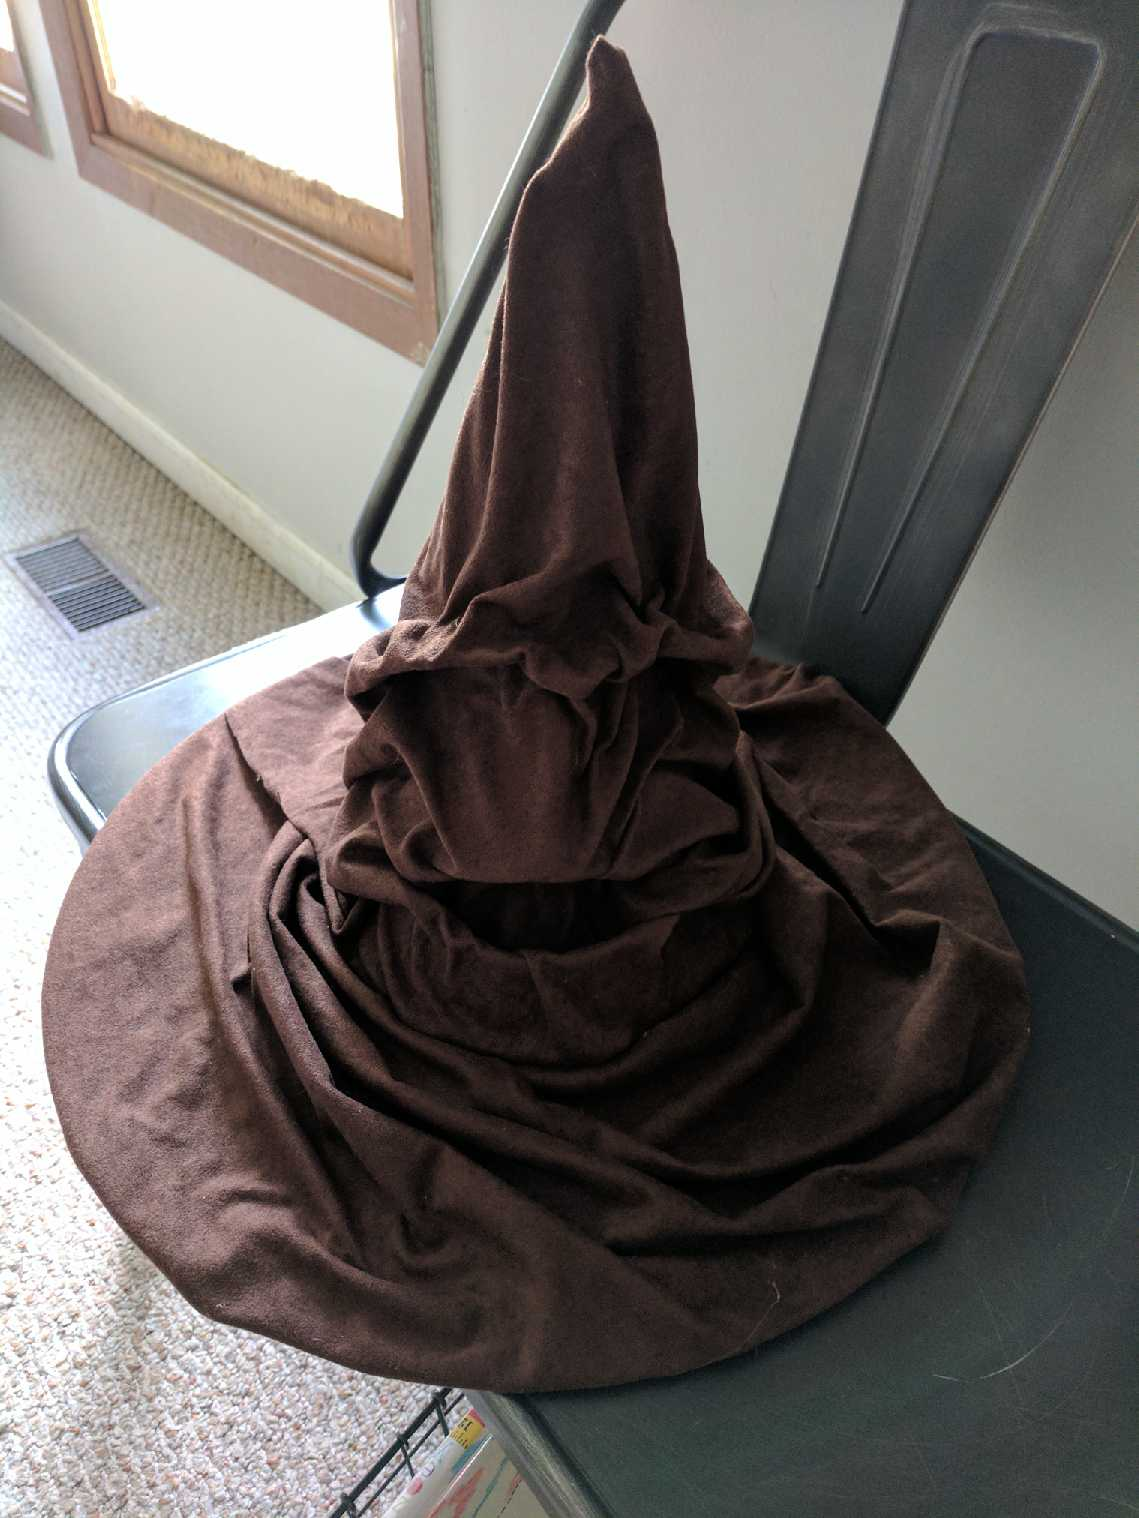 Guests donned this hand-made Sorting Hat to find out which house they belonged to.